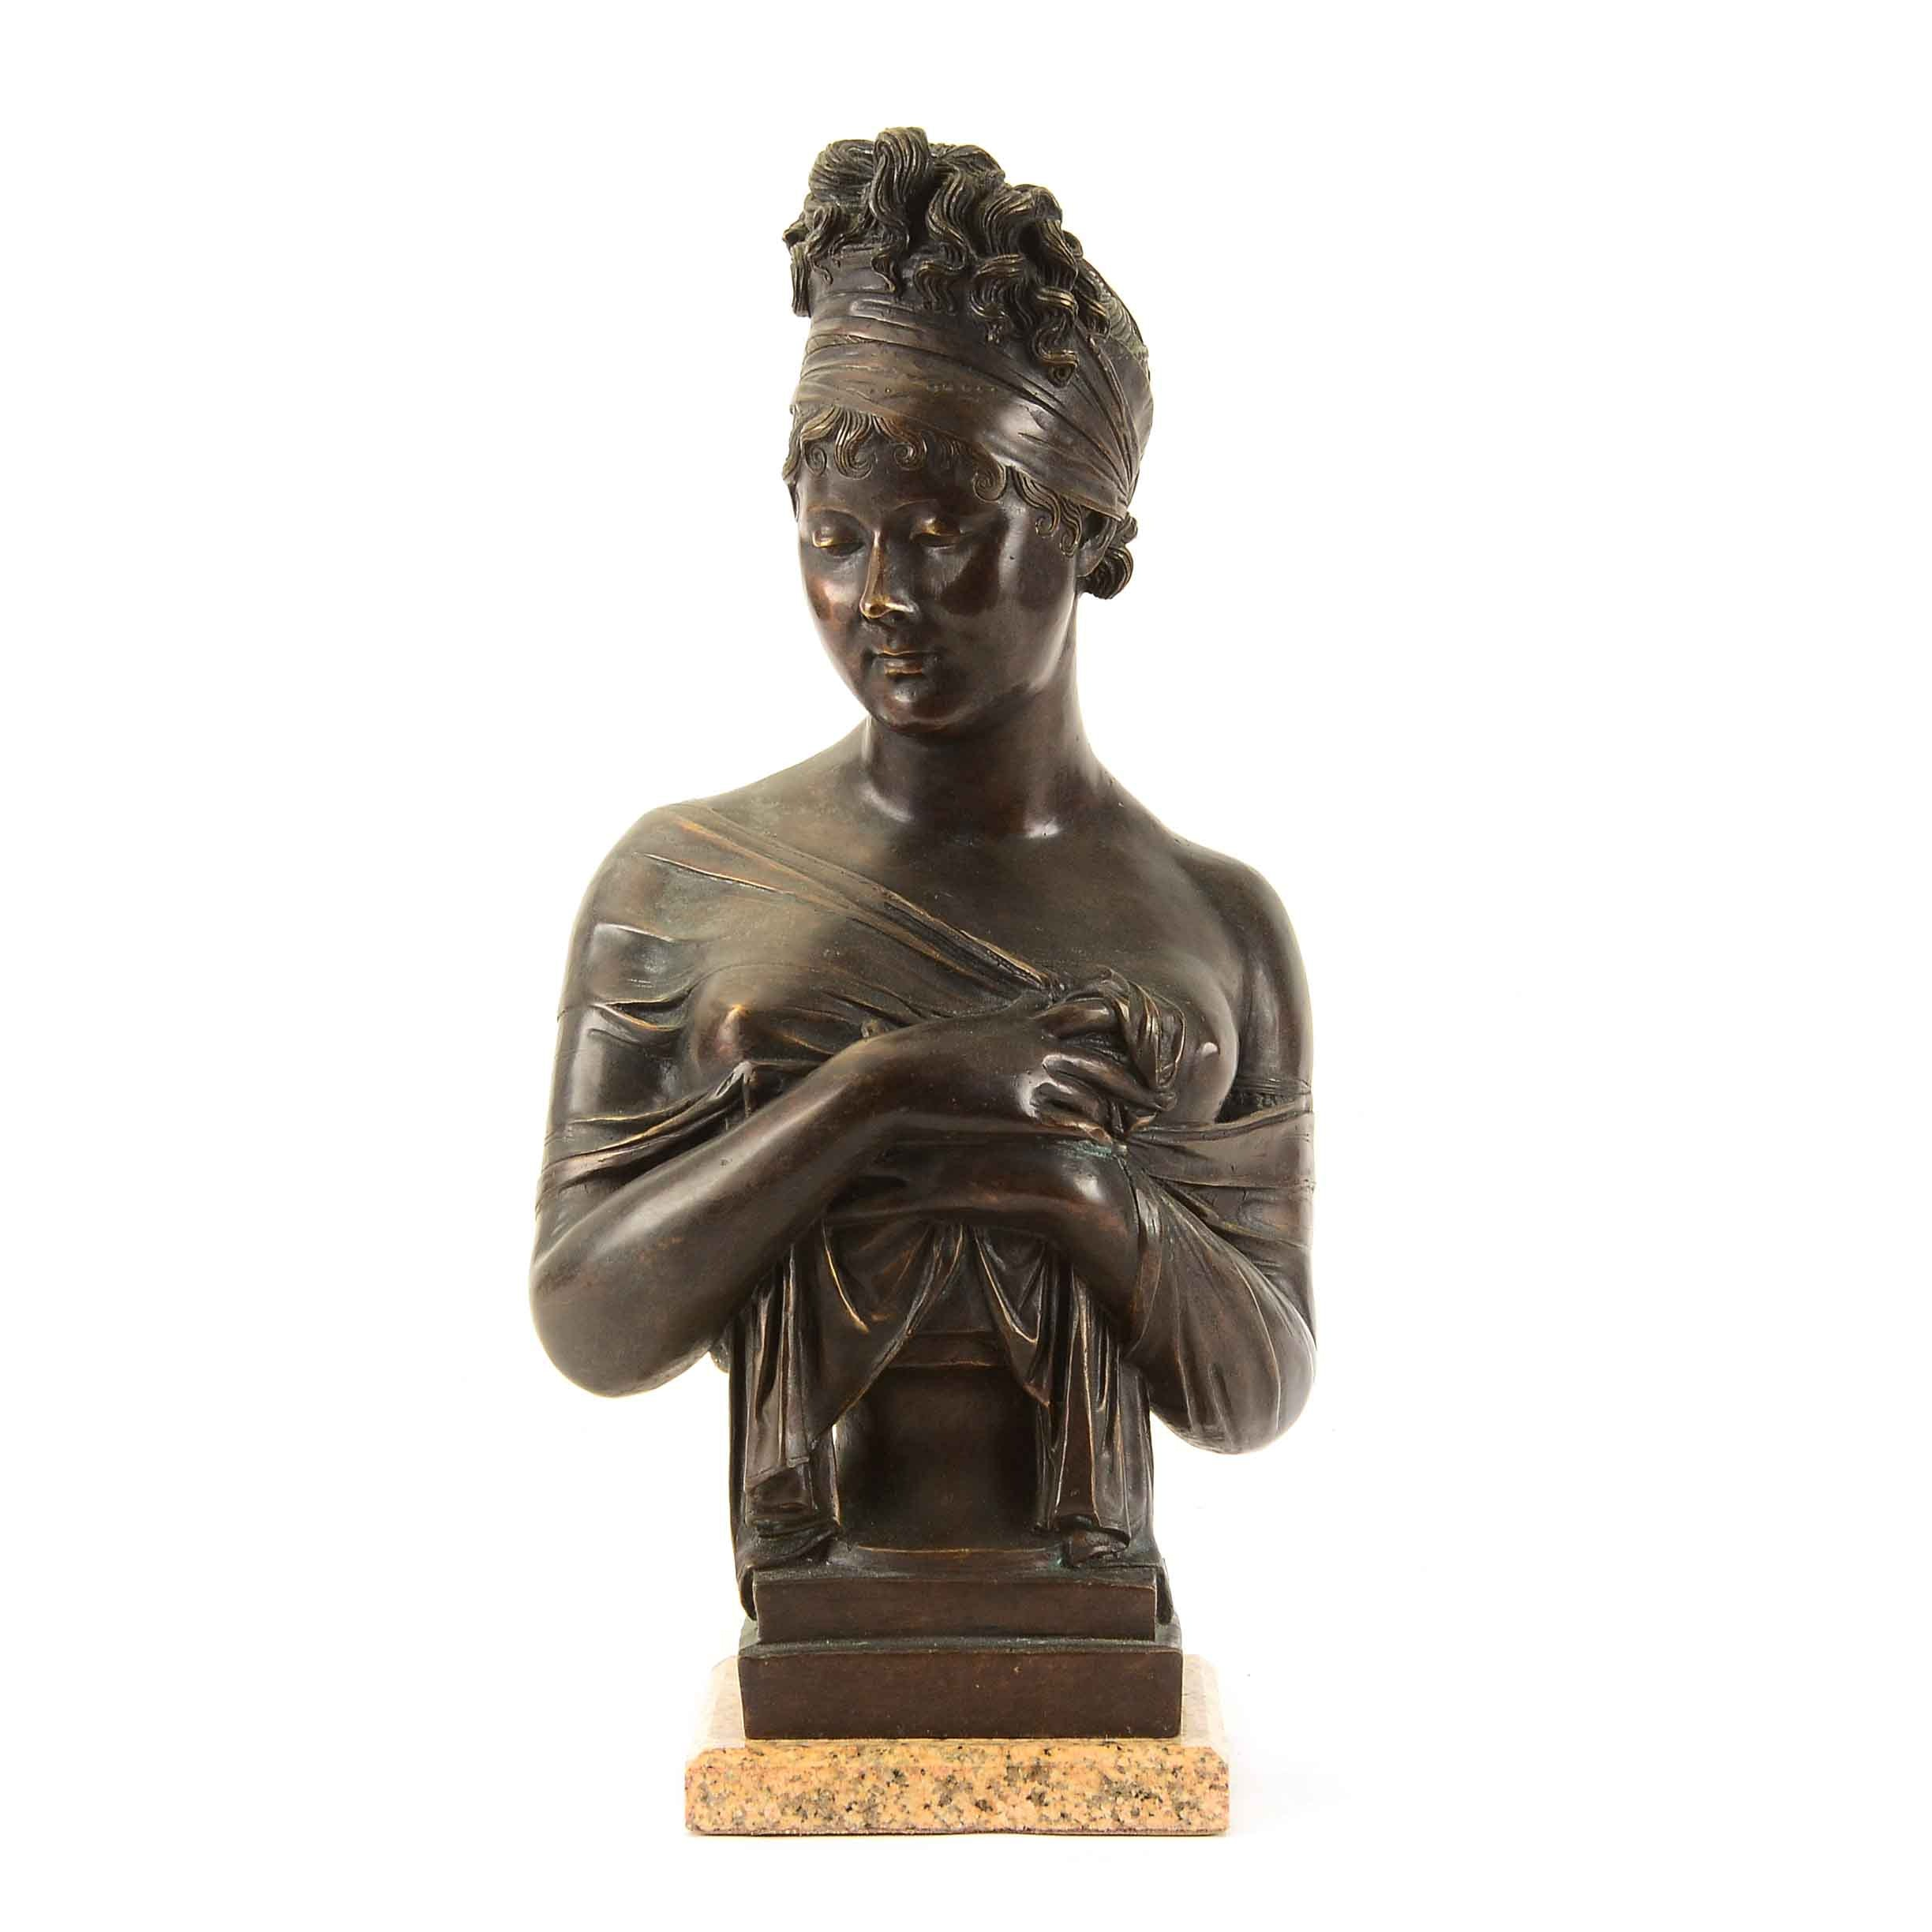 French 19th Century Bronze Bust of Madame Récamier, After Jean-Antoine Houdon